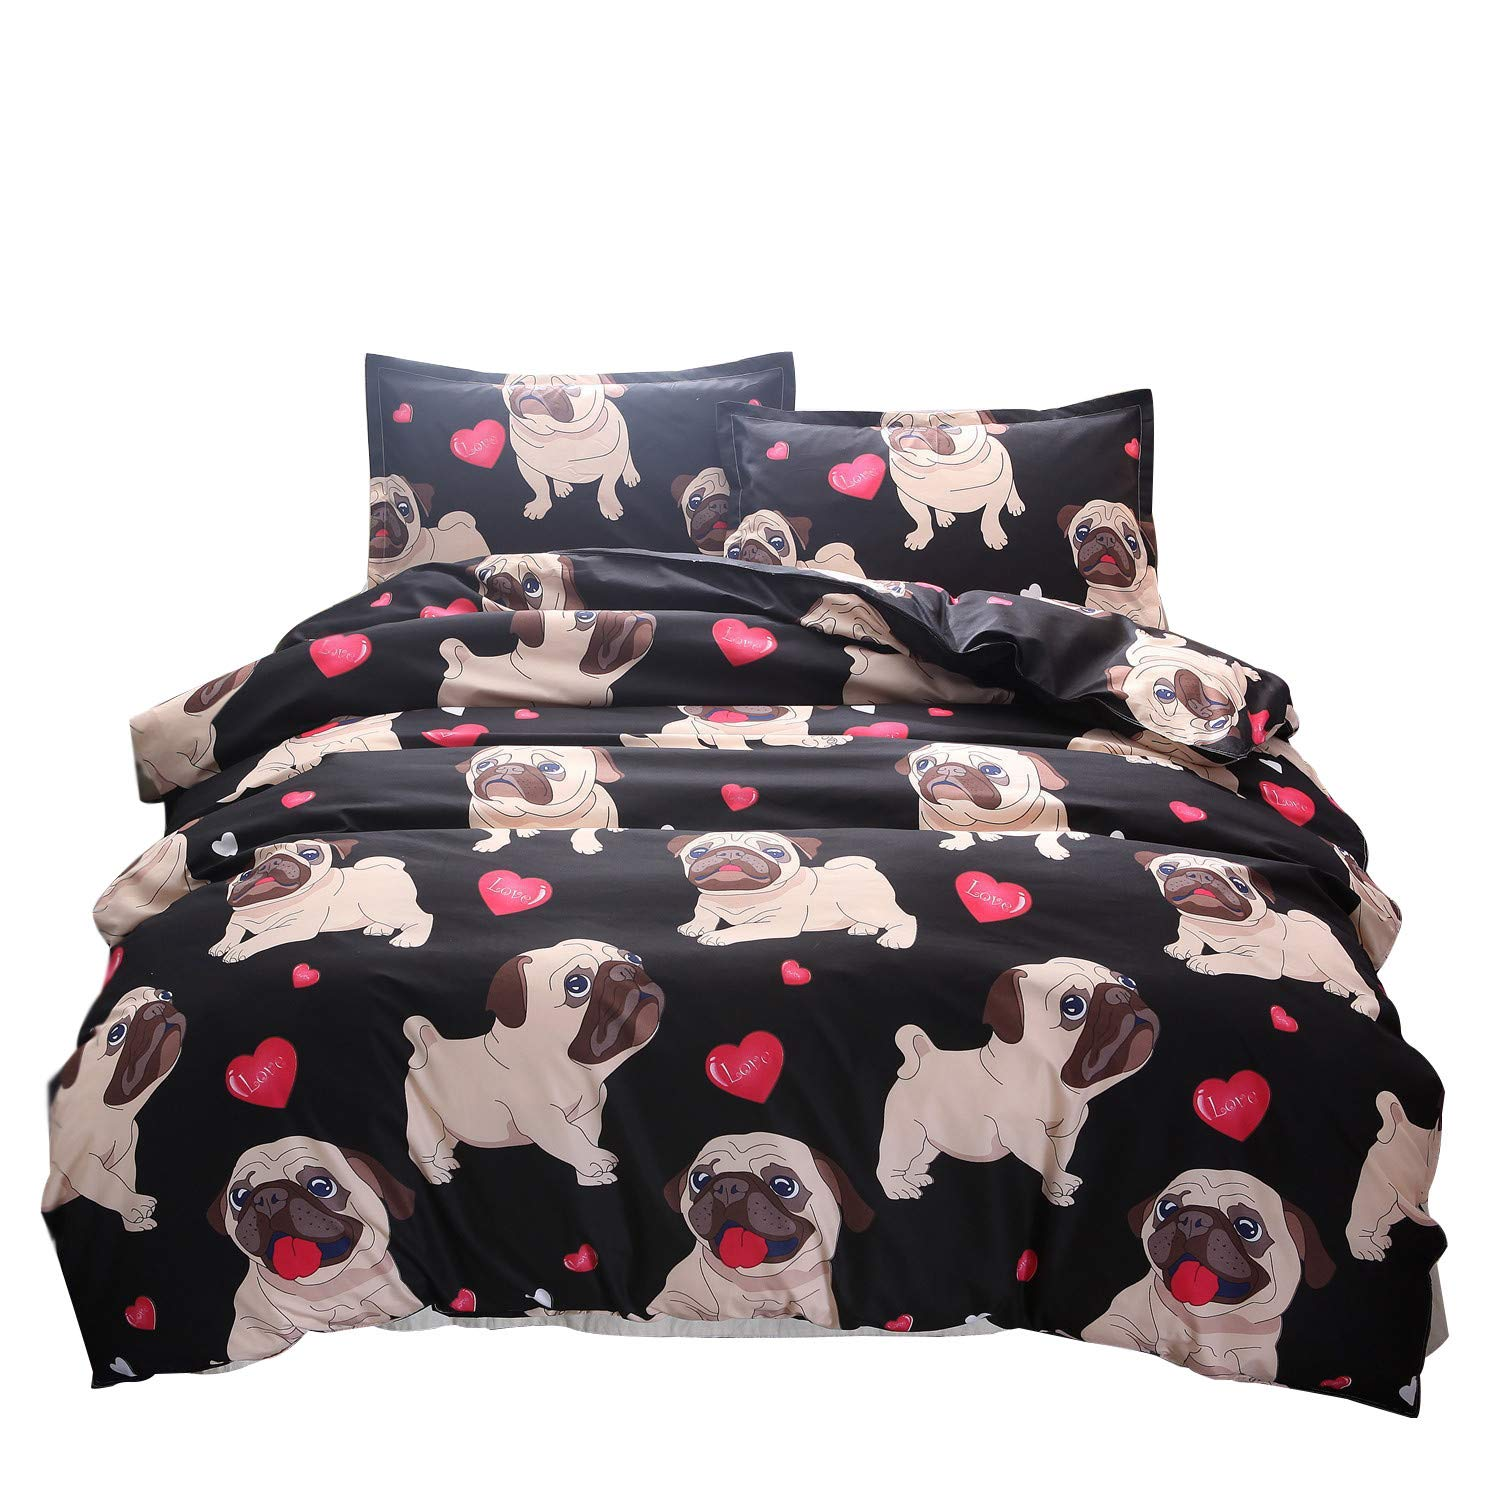 YOUSA Reversible Children Bedding Sets for Girls Boys Teens Animal Cartoon Bulldog Duvet Cover Set (Twin,Dog)